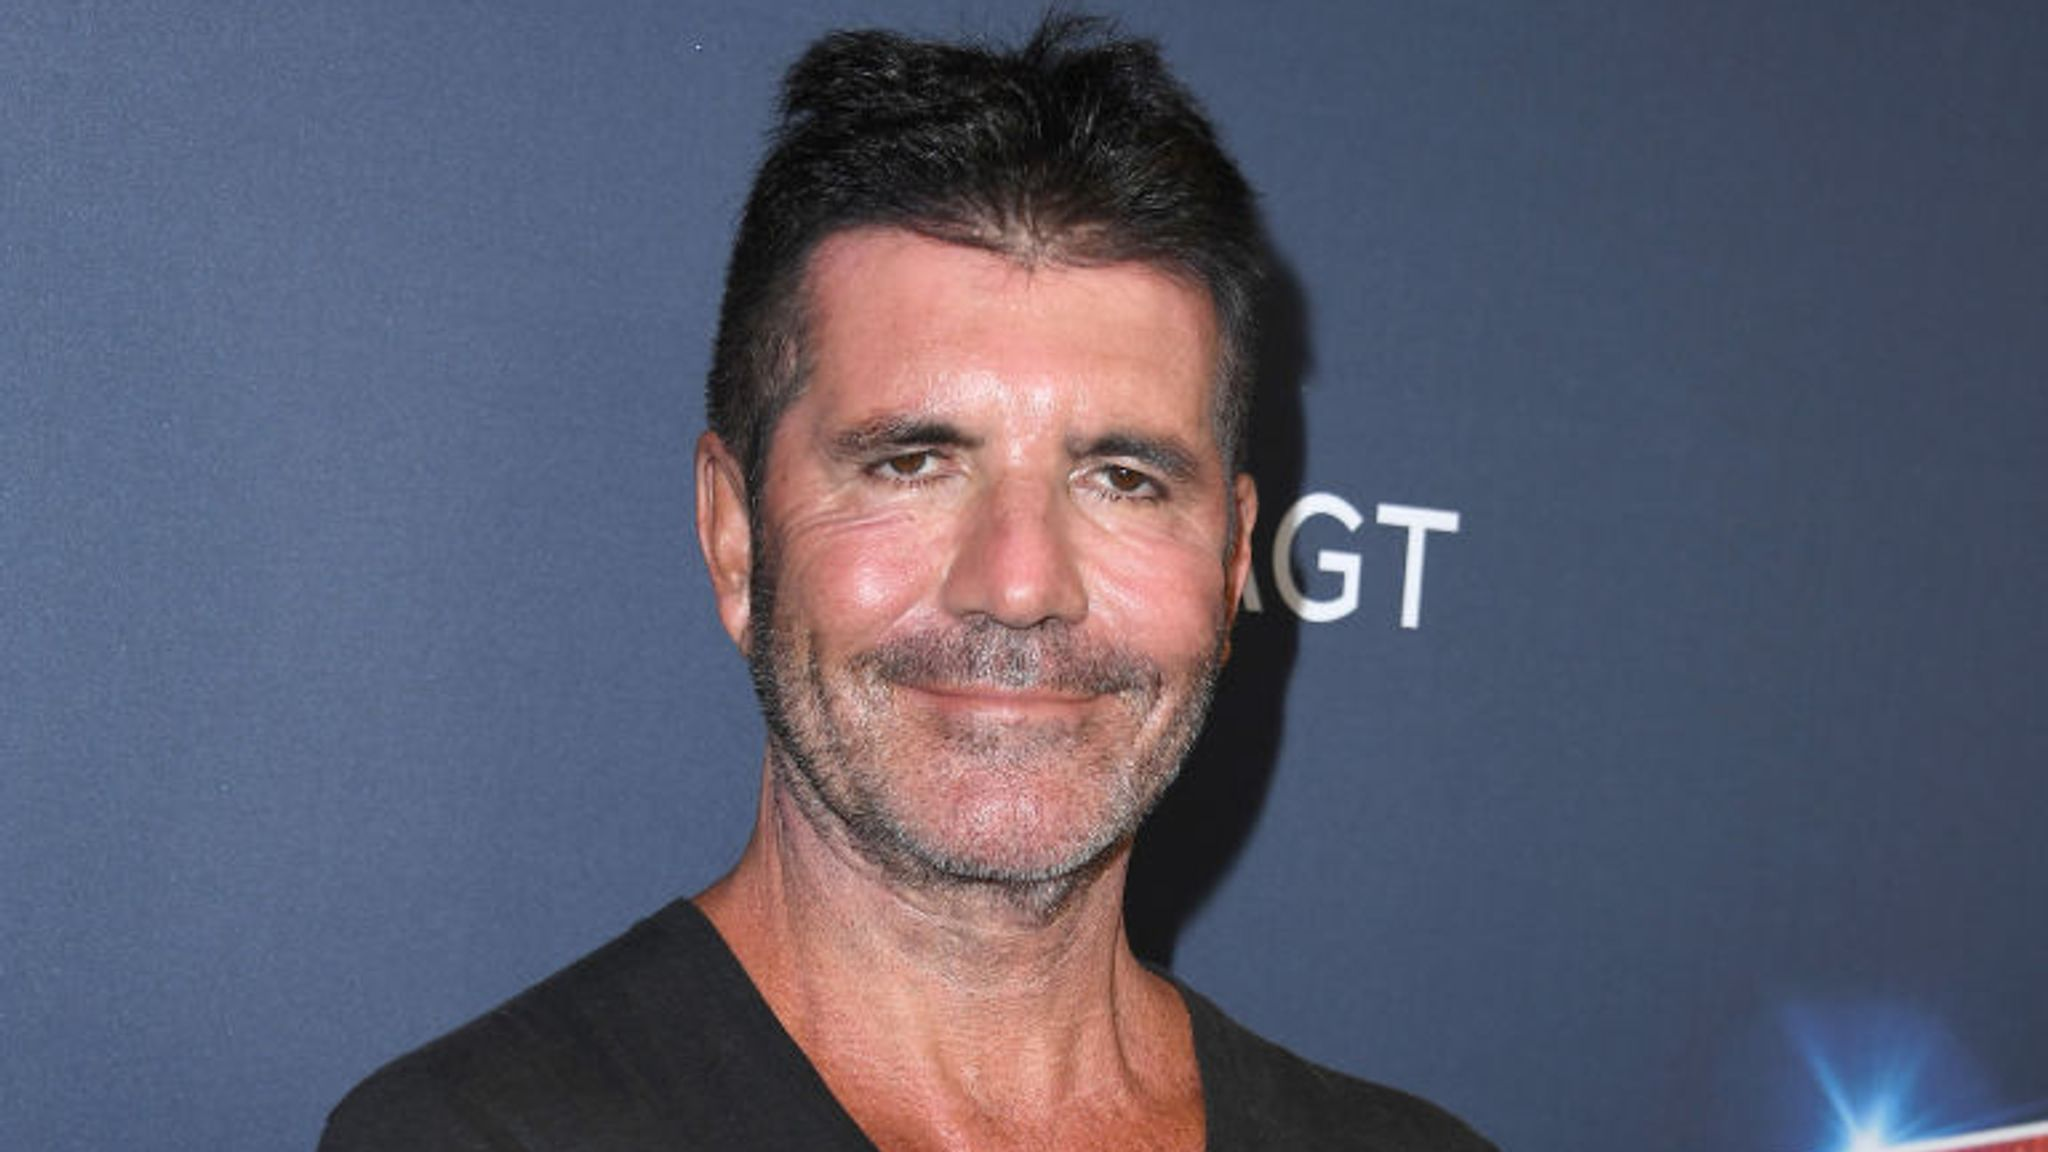 Simon Cowell Thanks Kelly Clarkson For Replacing Him On America S Got Talent After He Broke His Back Ents Arts News Sky News